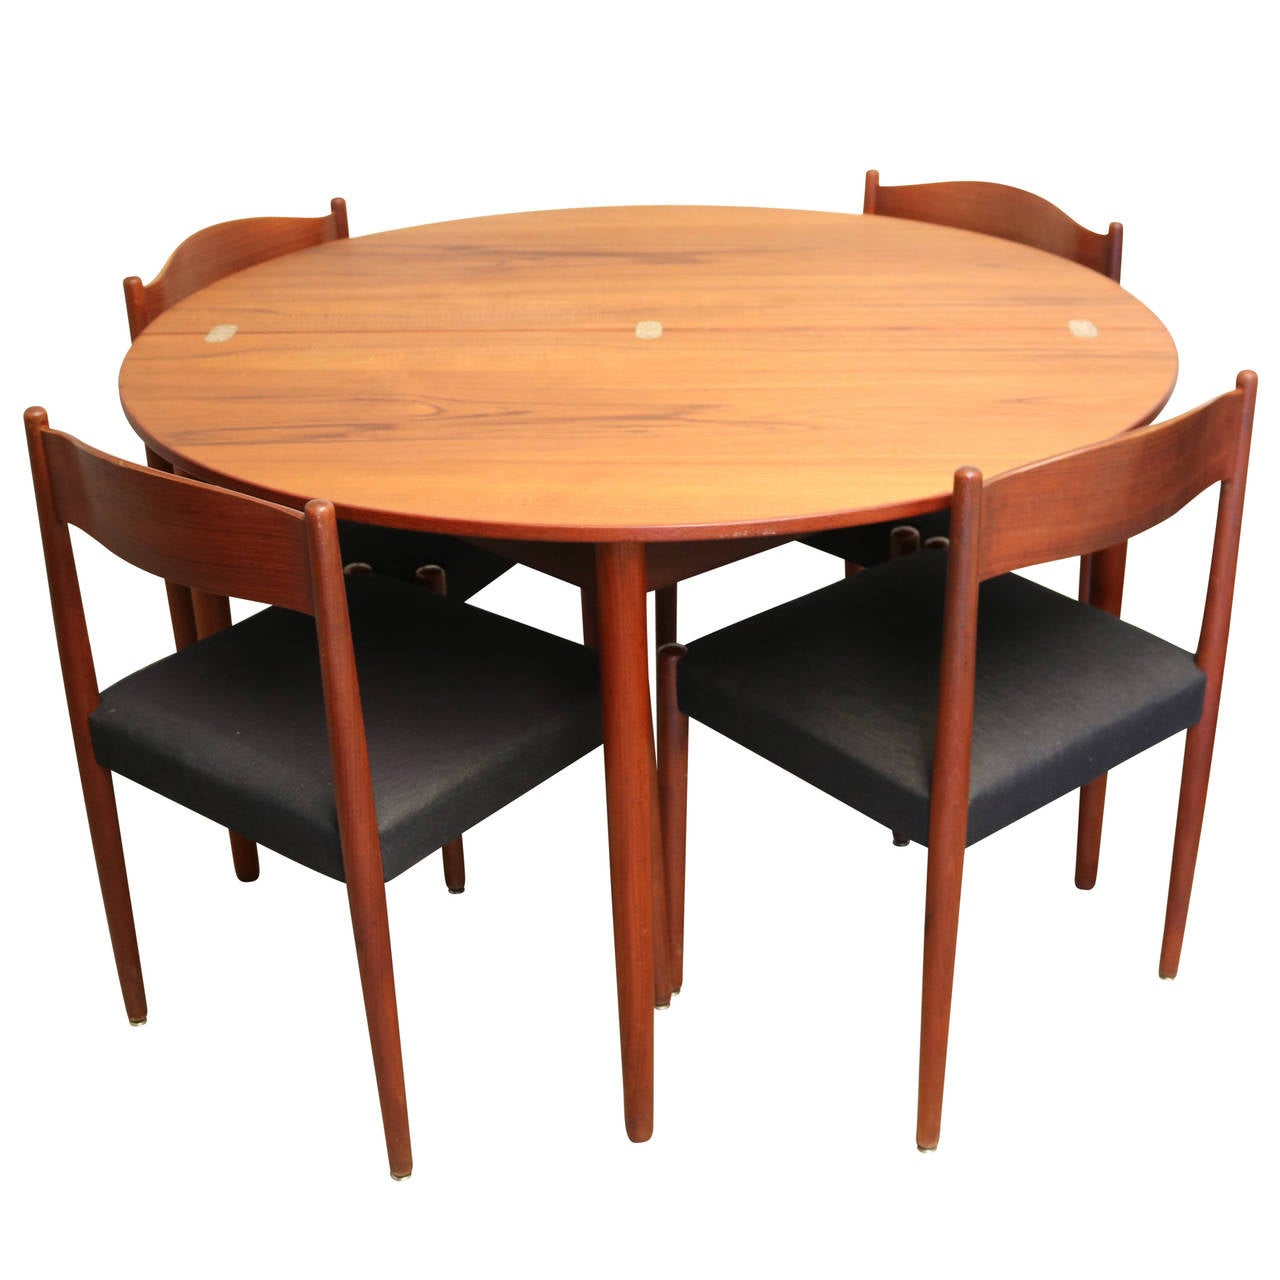 Round teak folding dining table and chairs by poul volther for Breakfast sets furniture